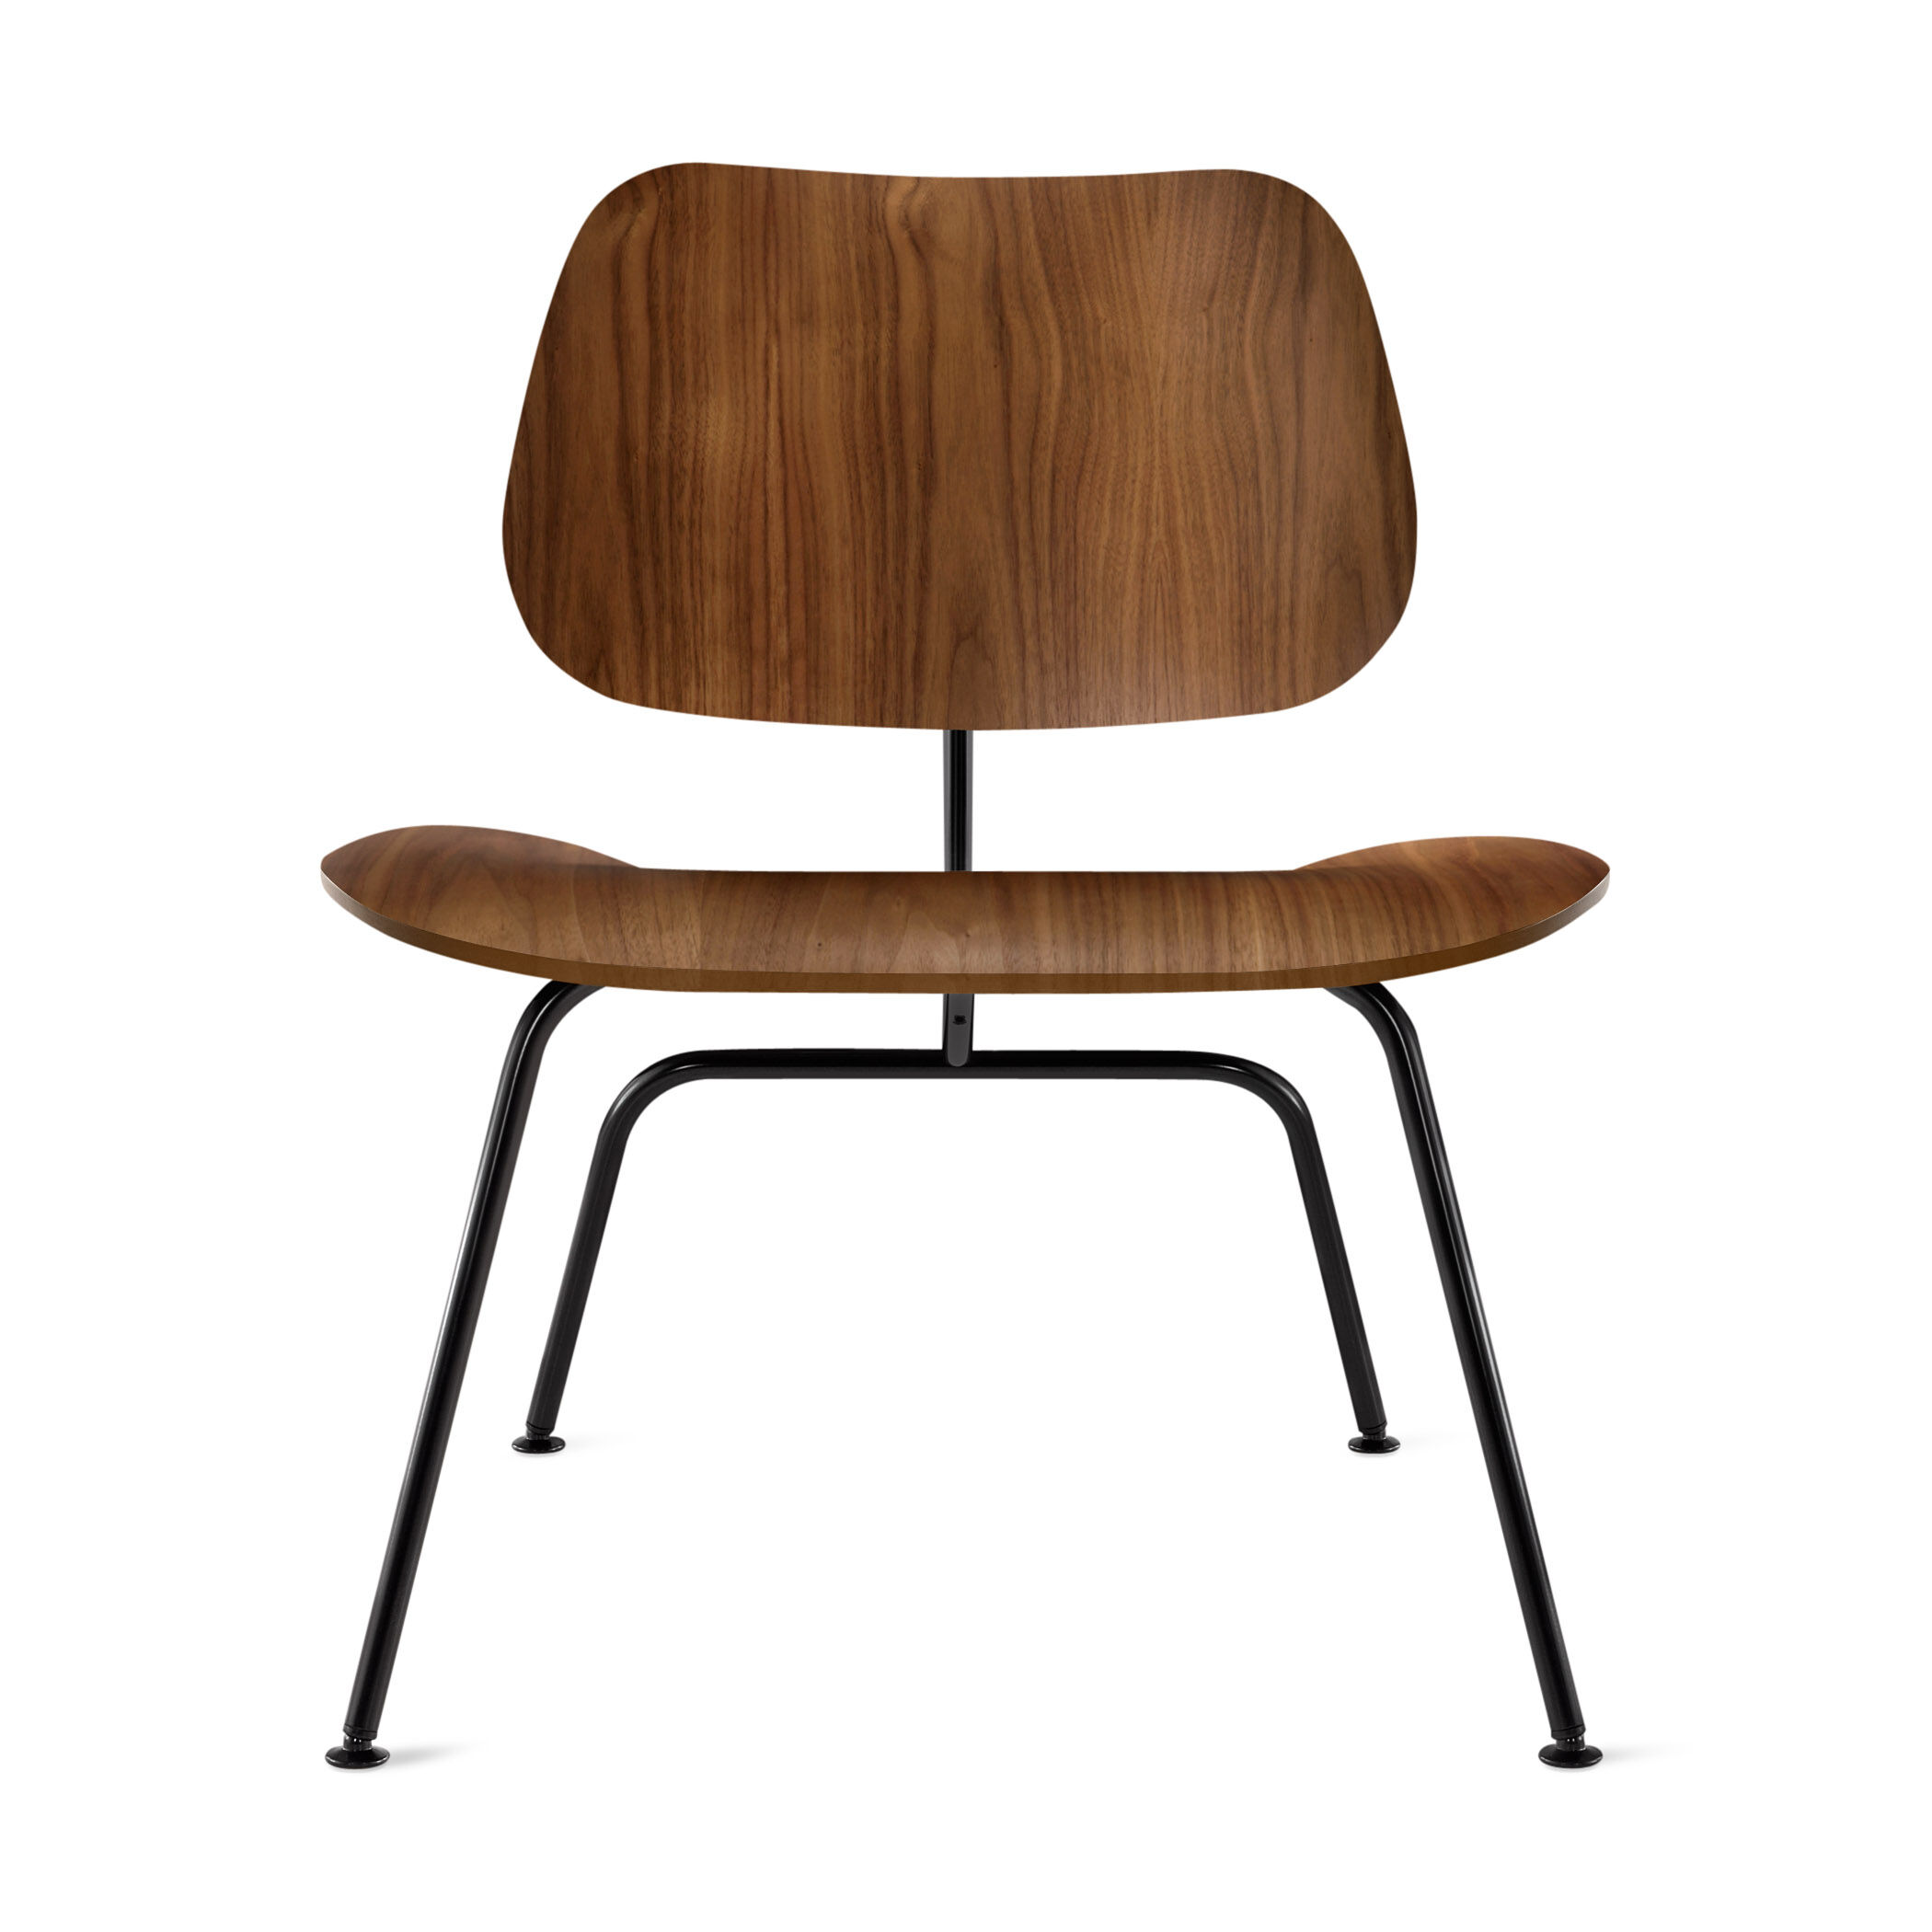 Beautiful Molded Plywood LCM Chair In Color